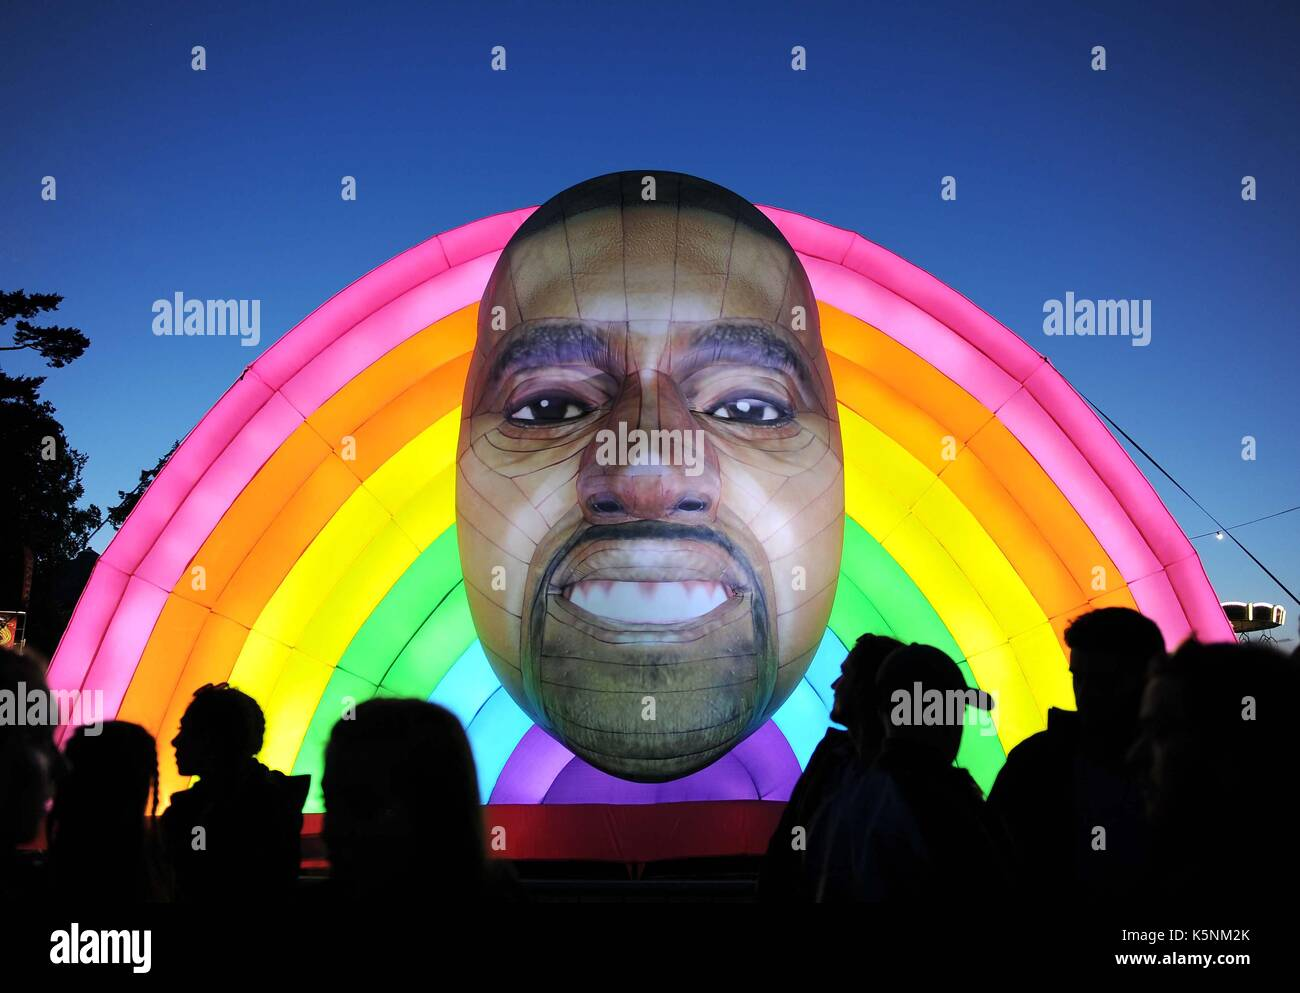 Inflatable Kanye West at Bestival Music Festival. Inflatable Kanye West Credit: Finnbarr Webster/Alamy Live News - Stock Image